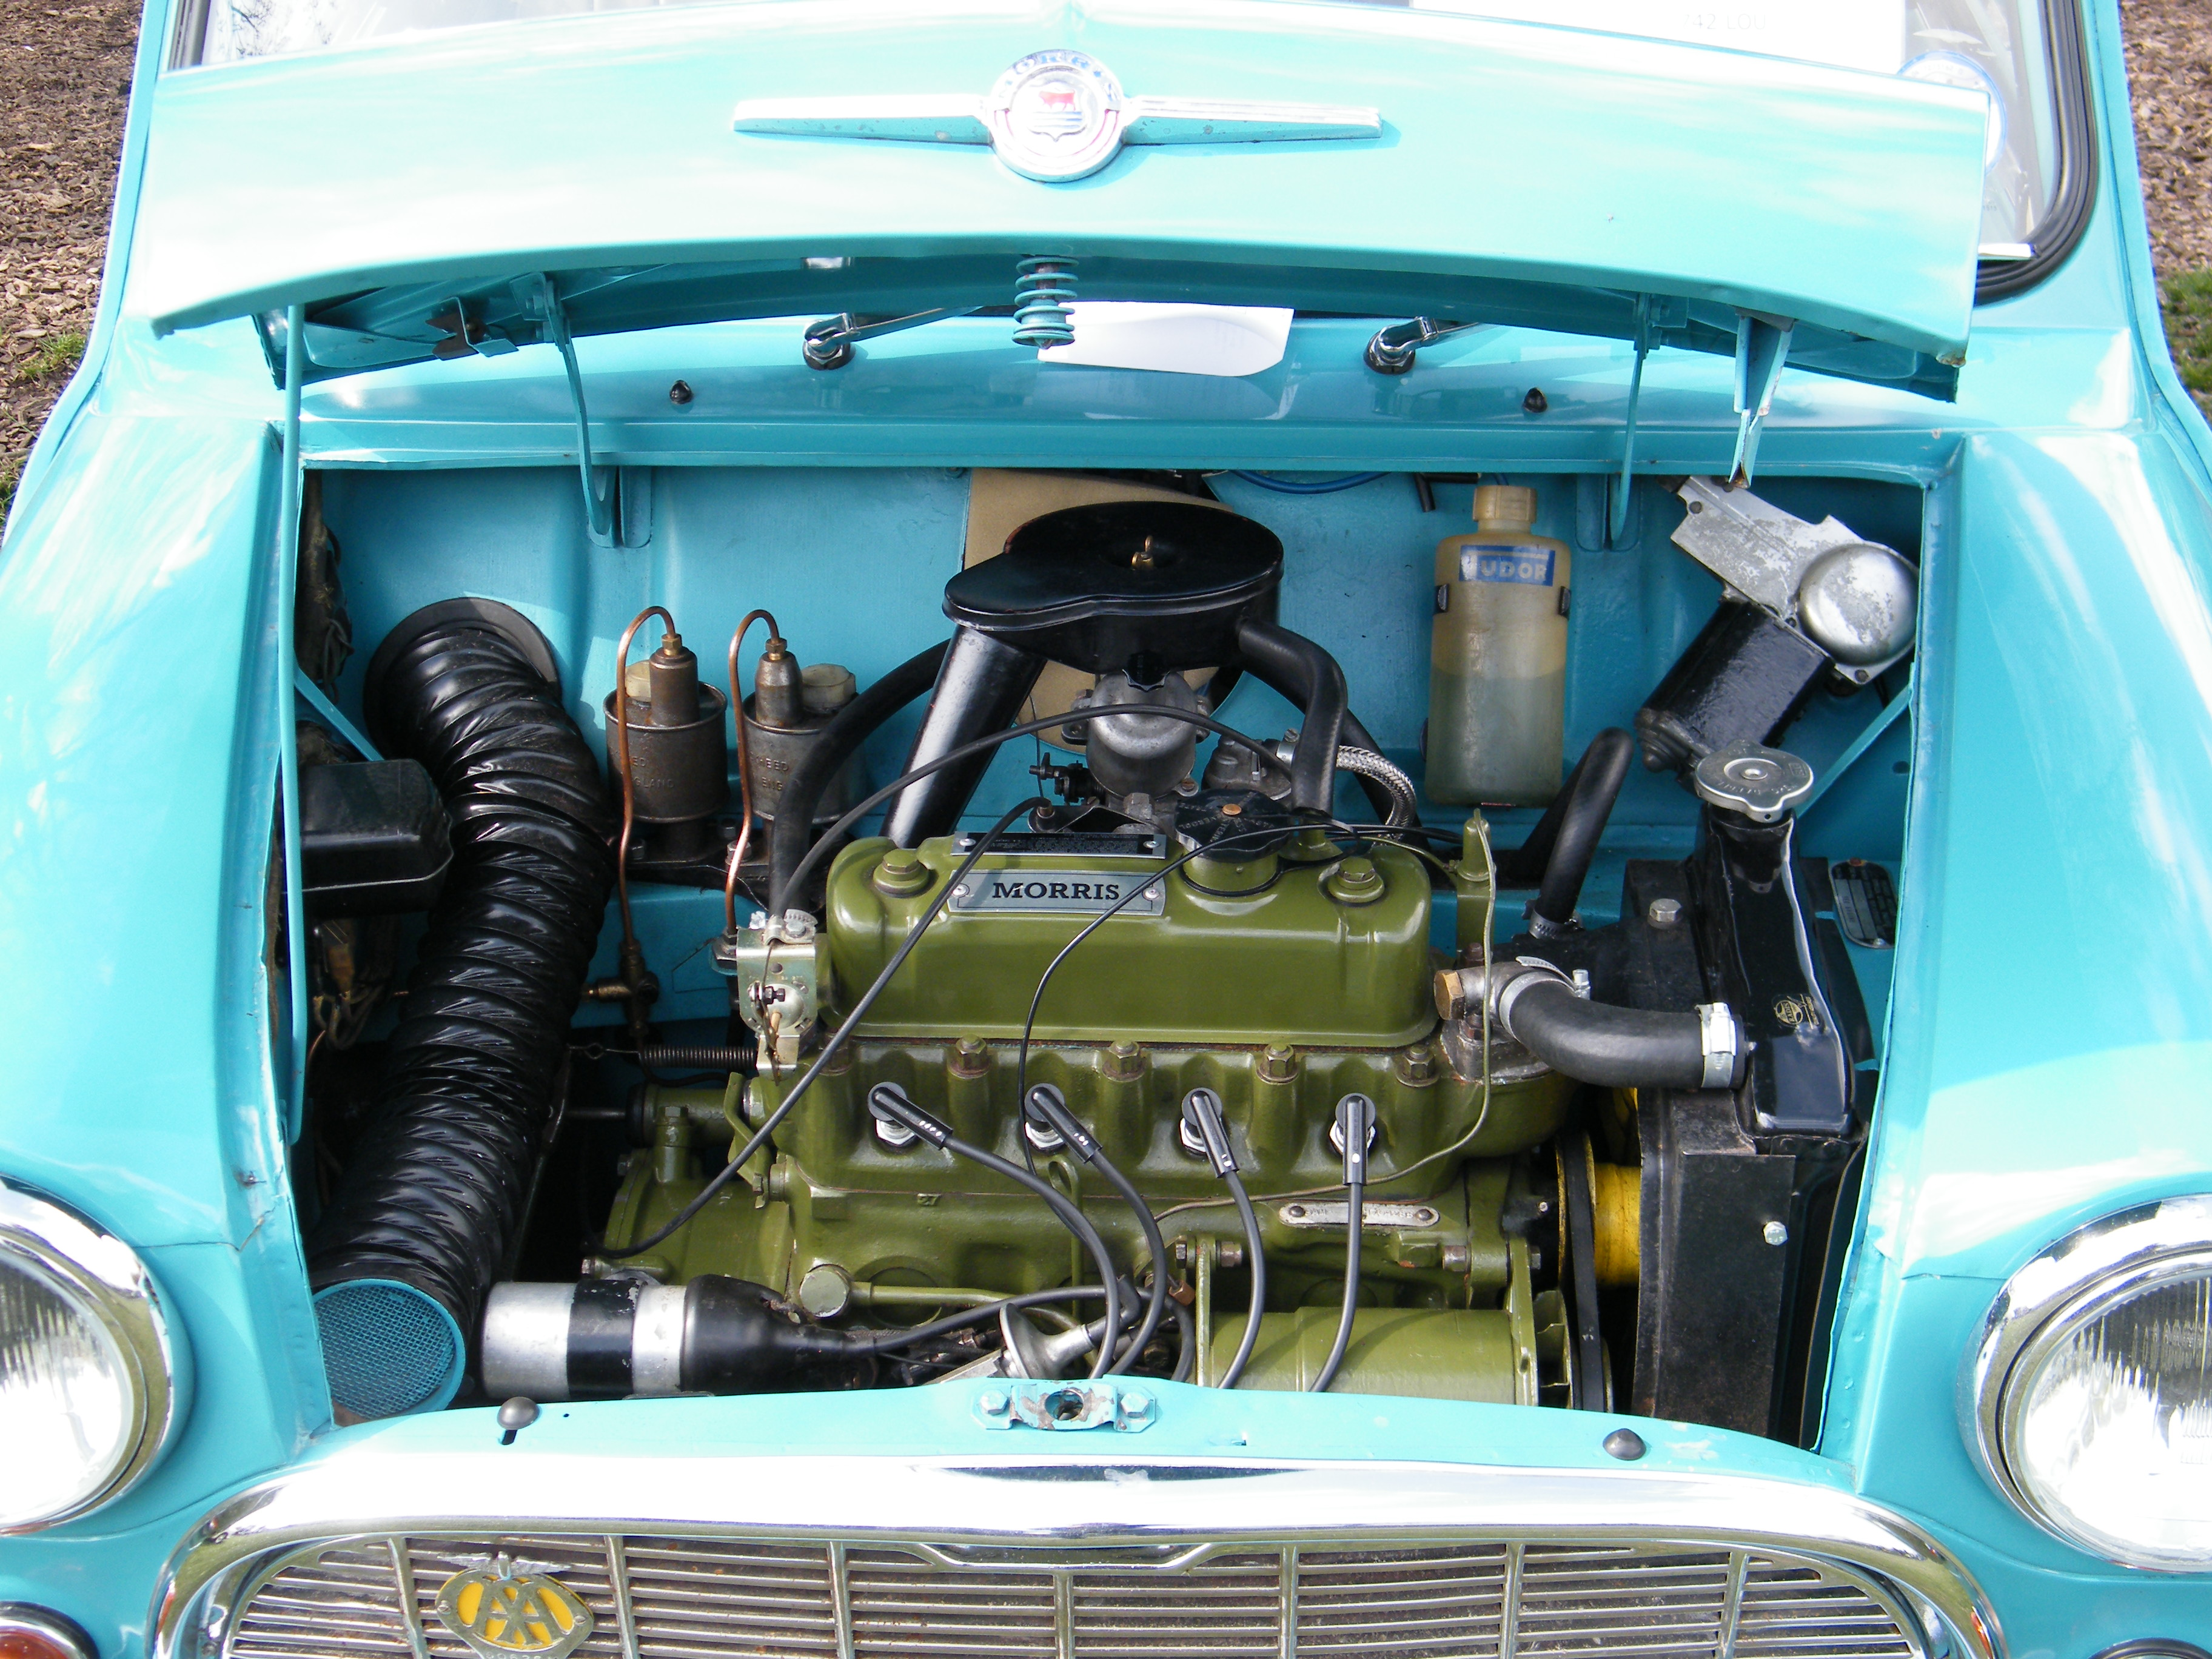 1964 Morris Mini's engine bay | Flickr - Photo Sharing!